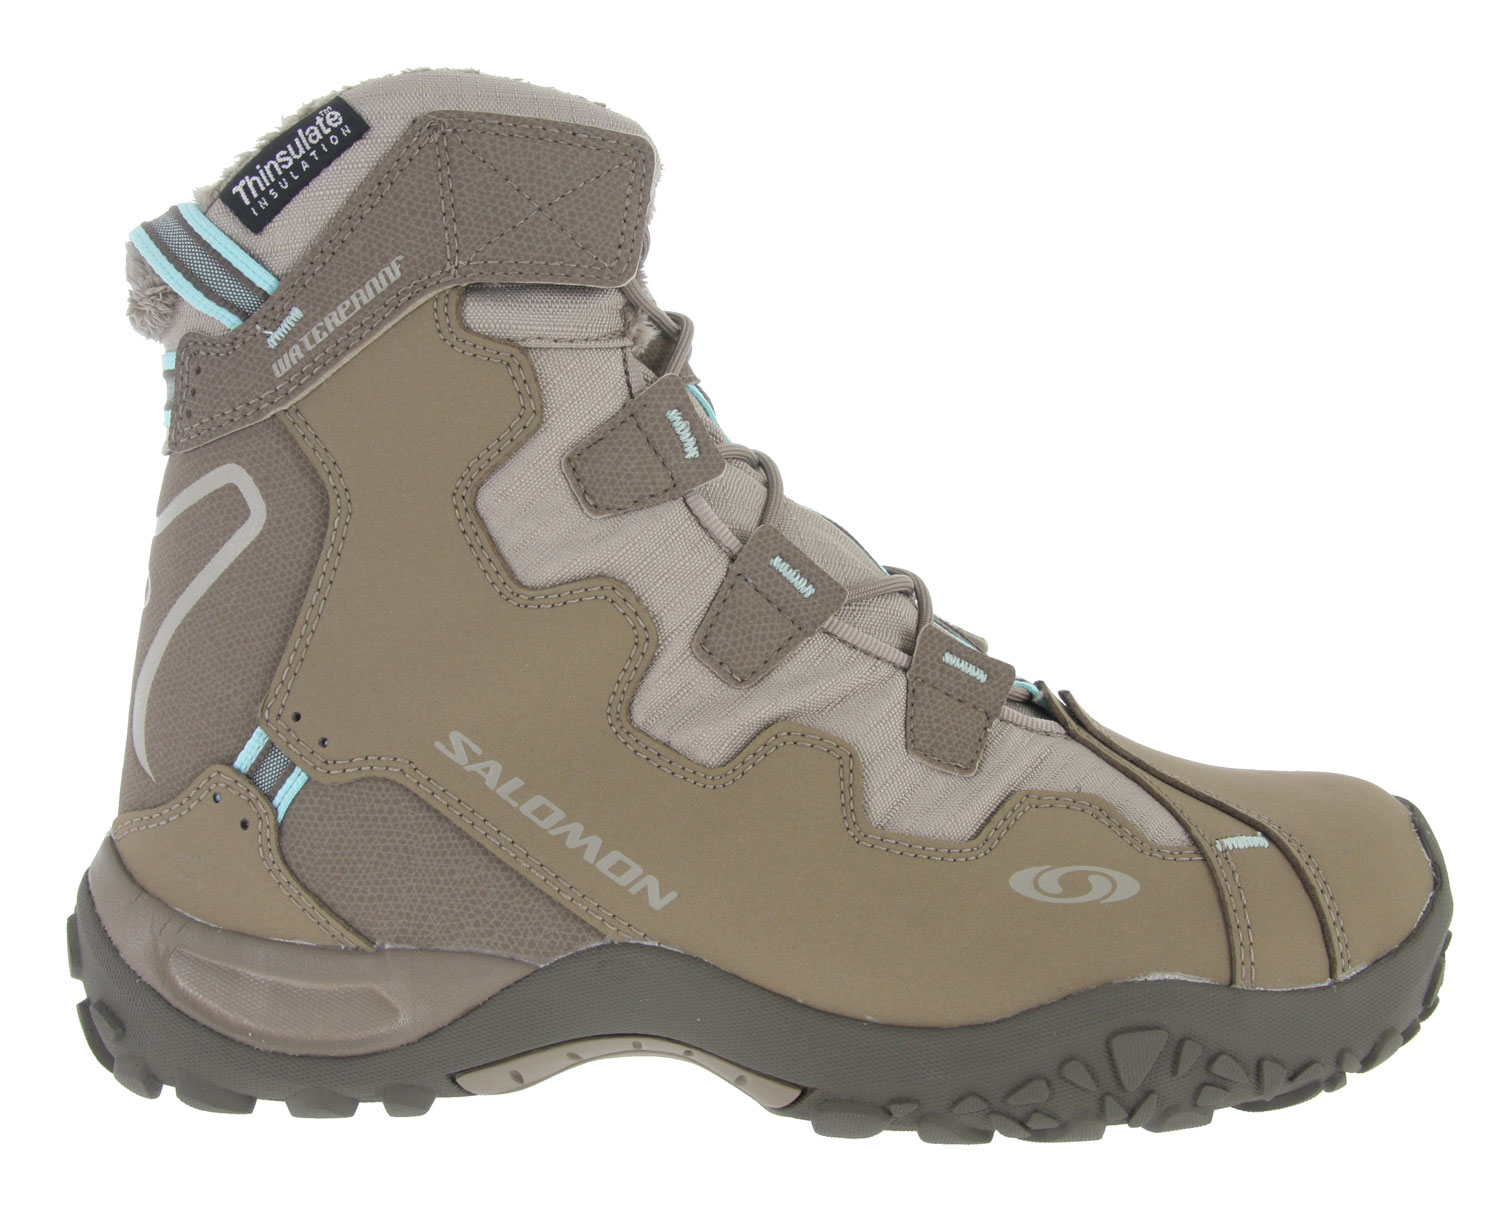 Camp and Hike This stylish boot with touches of leather and varying textures is warm and waterproof with a Thinsulate layer. Key Features of the Salomon Snowtrip TS Casual Boots Thyme/Marjorum/Aqua: Optimized fit specifically for women. Upper features heel foam, synthetic suede, and gusseted tongue. Thinsulate 200g lining offers warmth and comfort - lightweight, moisture-resistant, and breathable. Synthetic fur lining and waterproof membrane. Non-marking Contagrip outsole Molded EVA midsole and die cut EVA sockliner. Weight: 1 lb. 4 oz. (pair). - $74.95